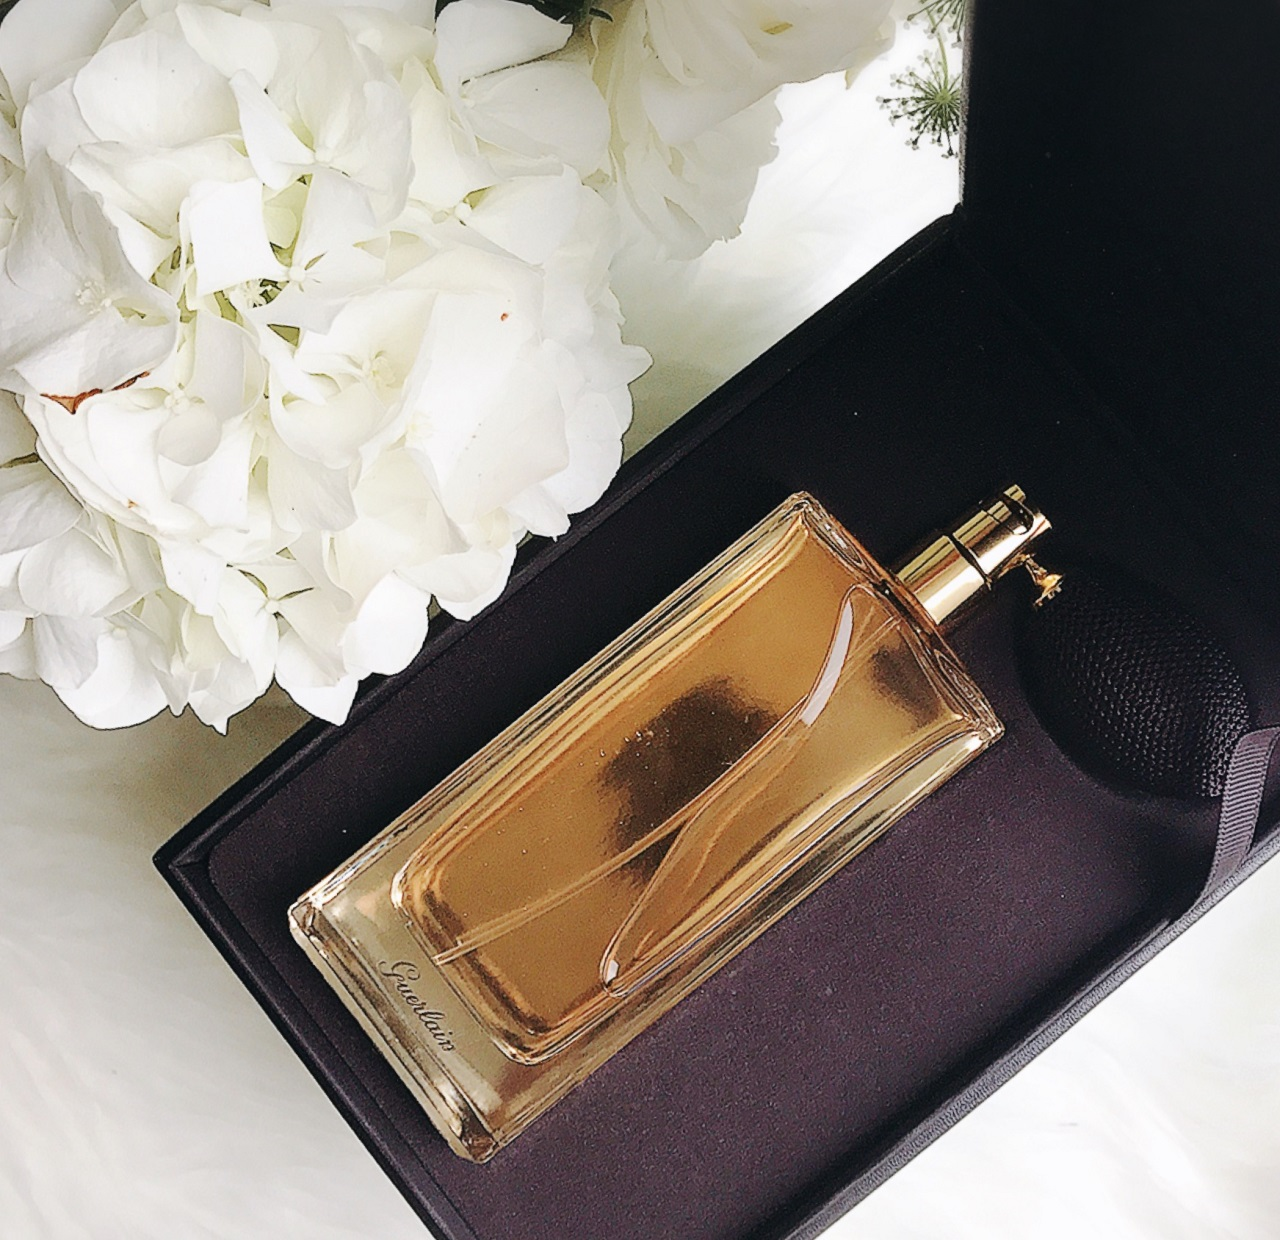 Guerlain Neroli Outrenoir packaging